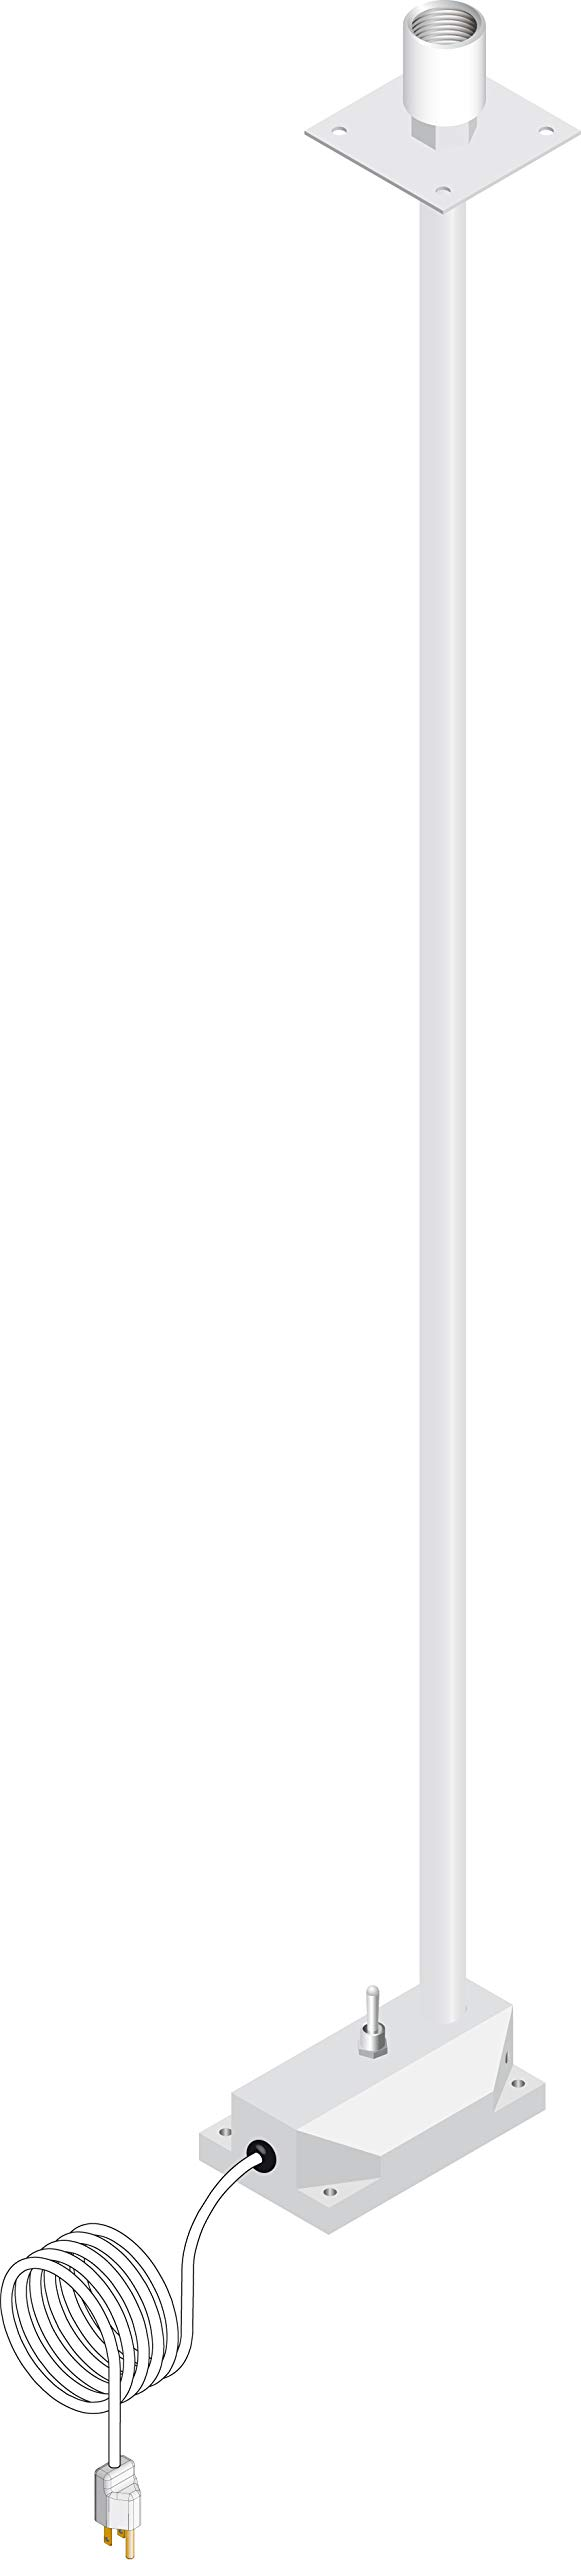 Checkout Light, White Shade with Black Number Five (5), Anodized Silver Pole Includes Base Mount and Bulb Socket by D & P Custom Lights & Wiring Systems (Image #2)